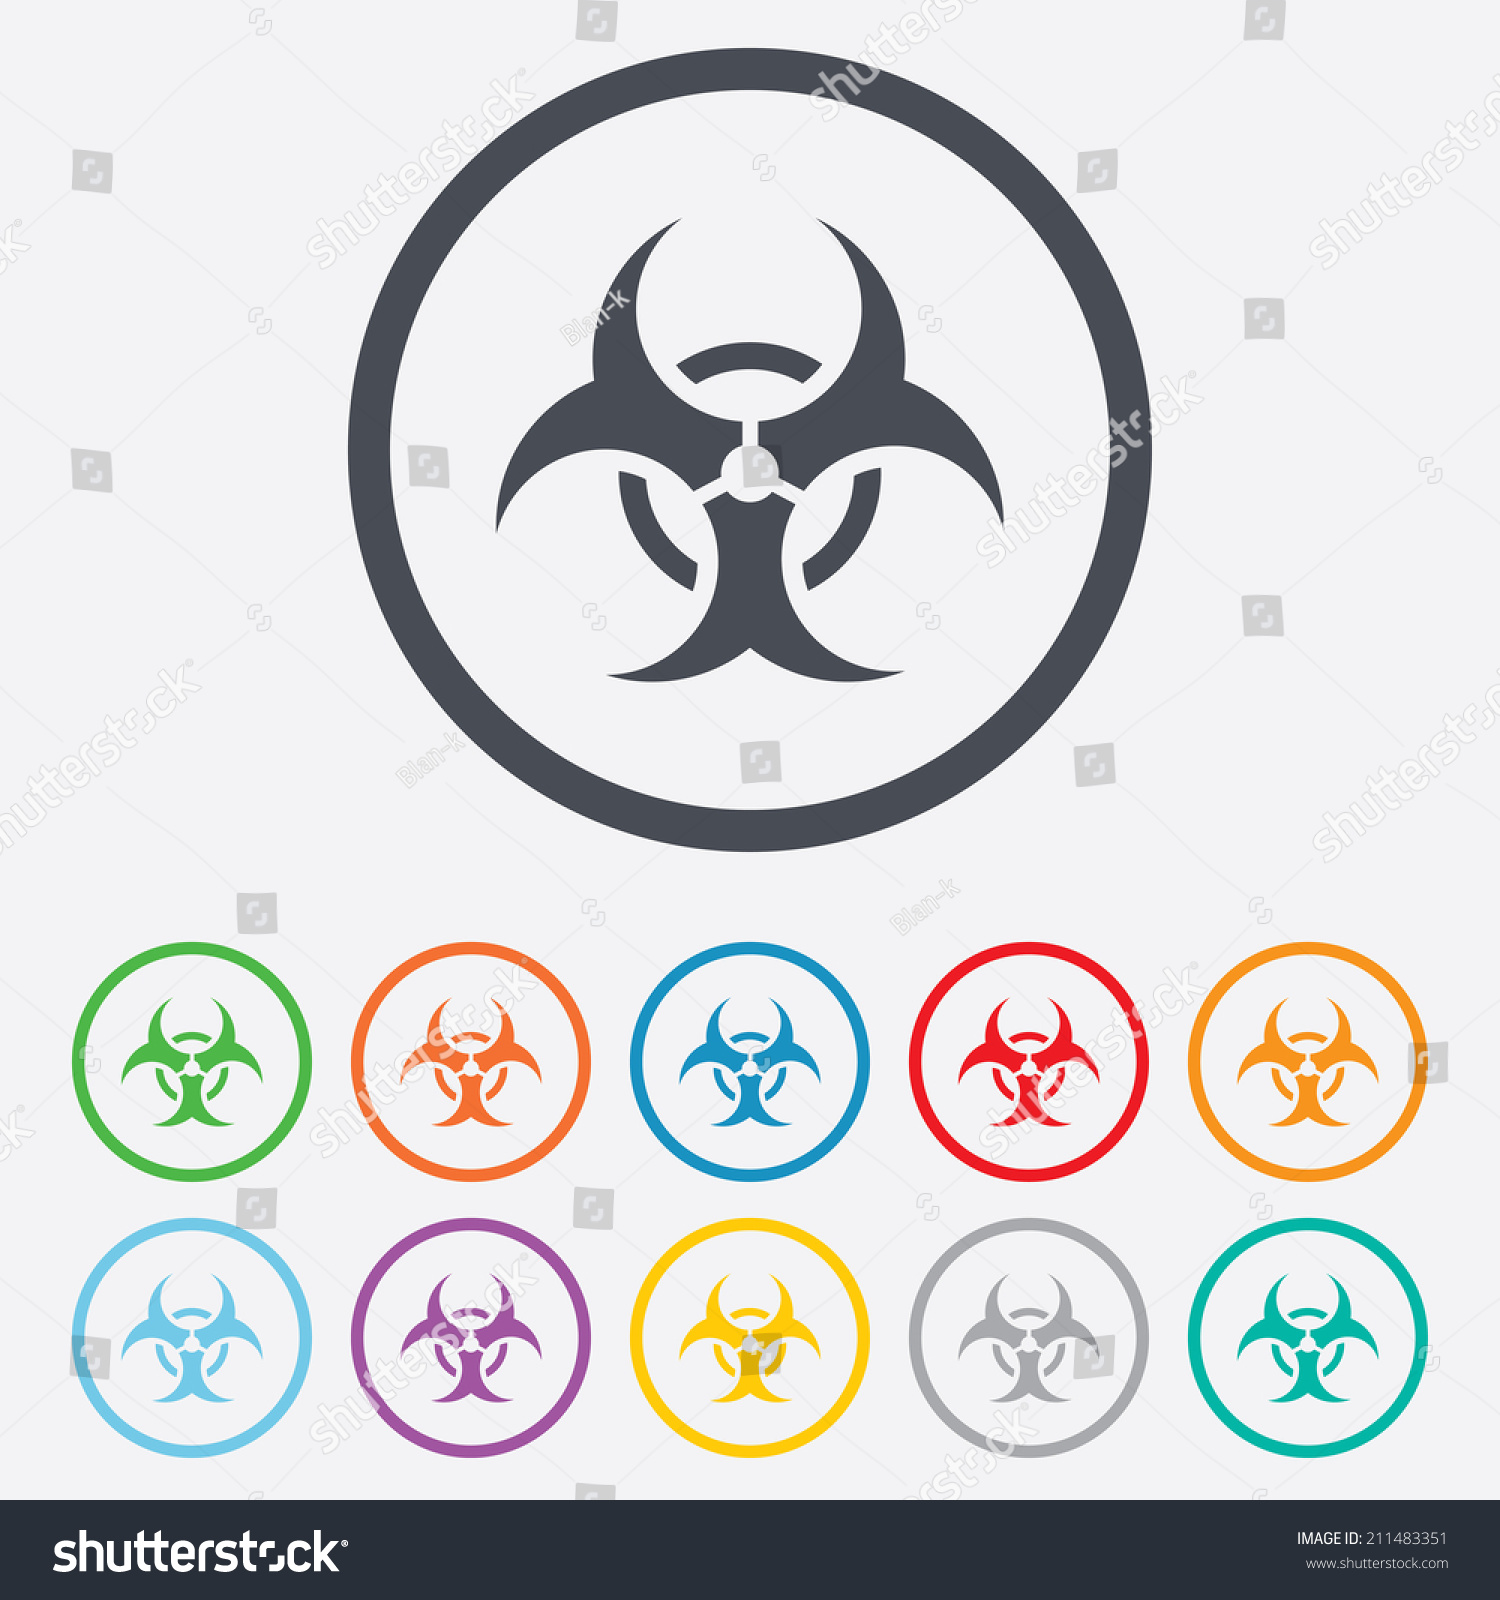 Illustration Of A Long Shadow Do Not Enter Icon With A Biohazard